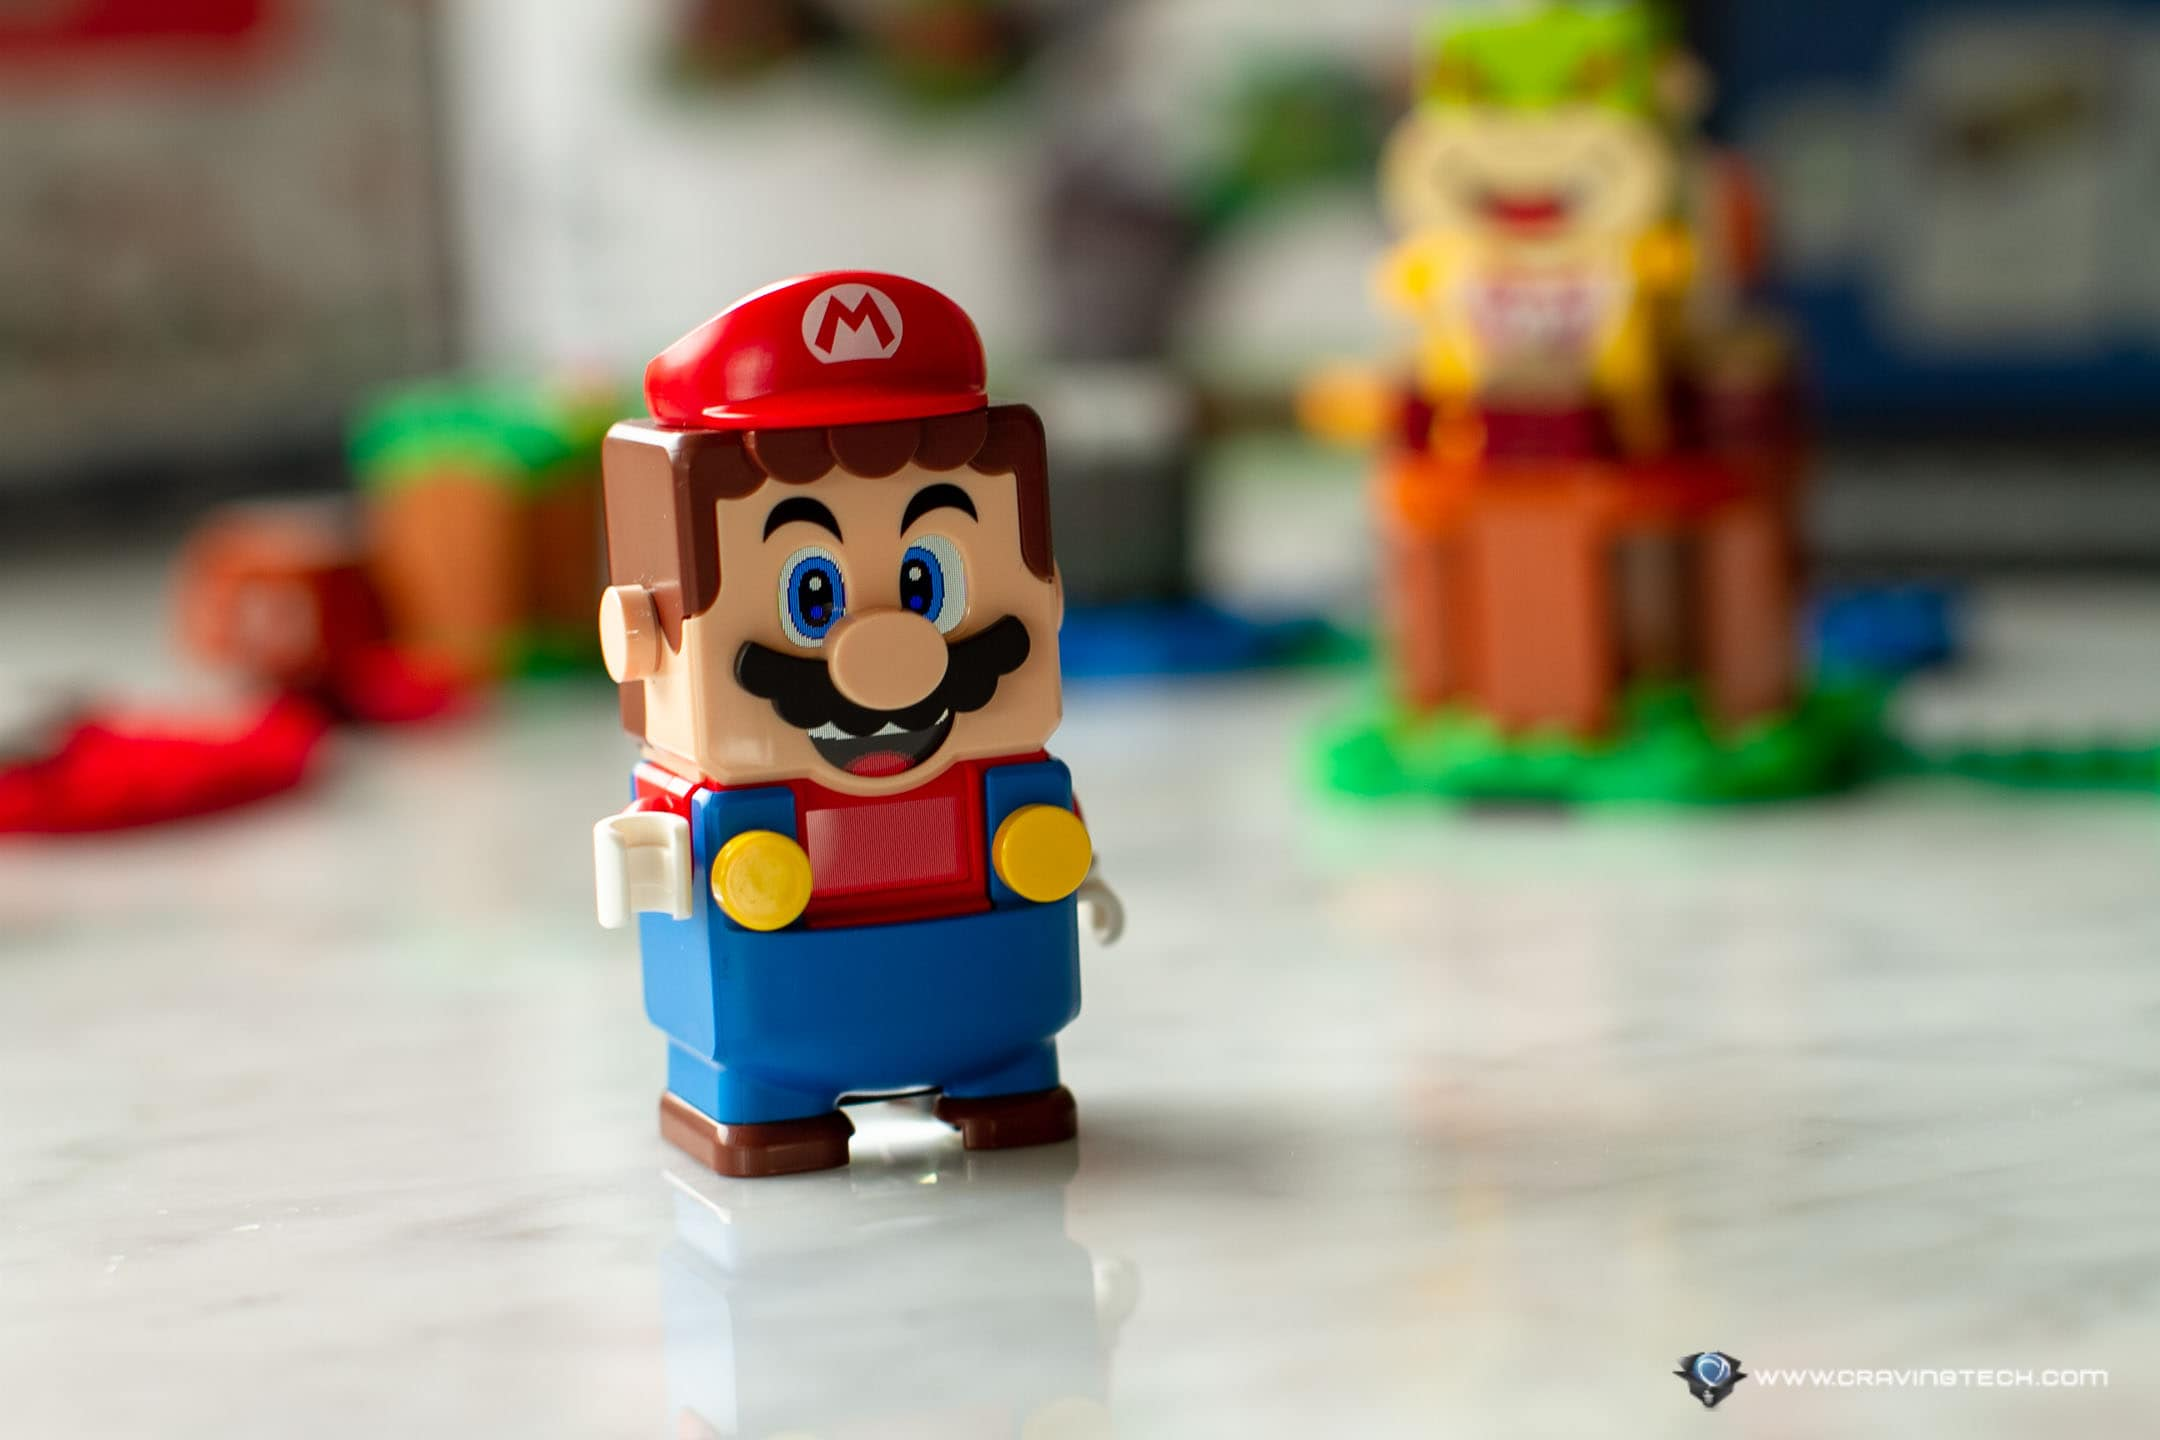 LEGO Super Mario combines the best of two worlds and makes them into a creative reality